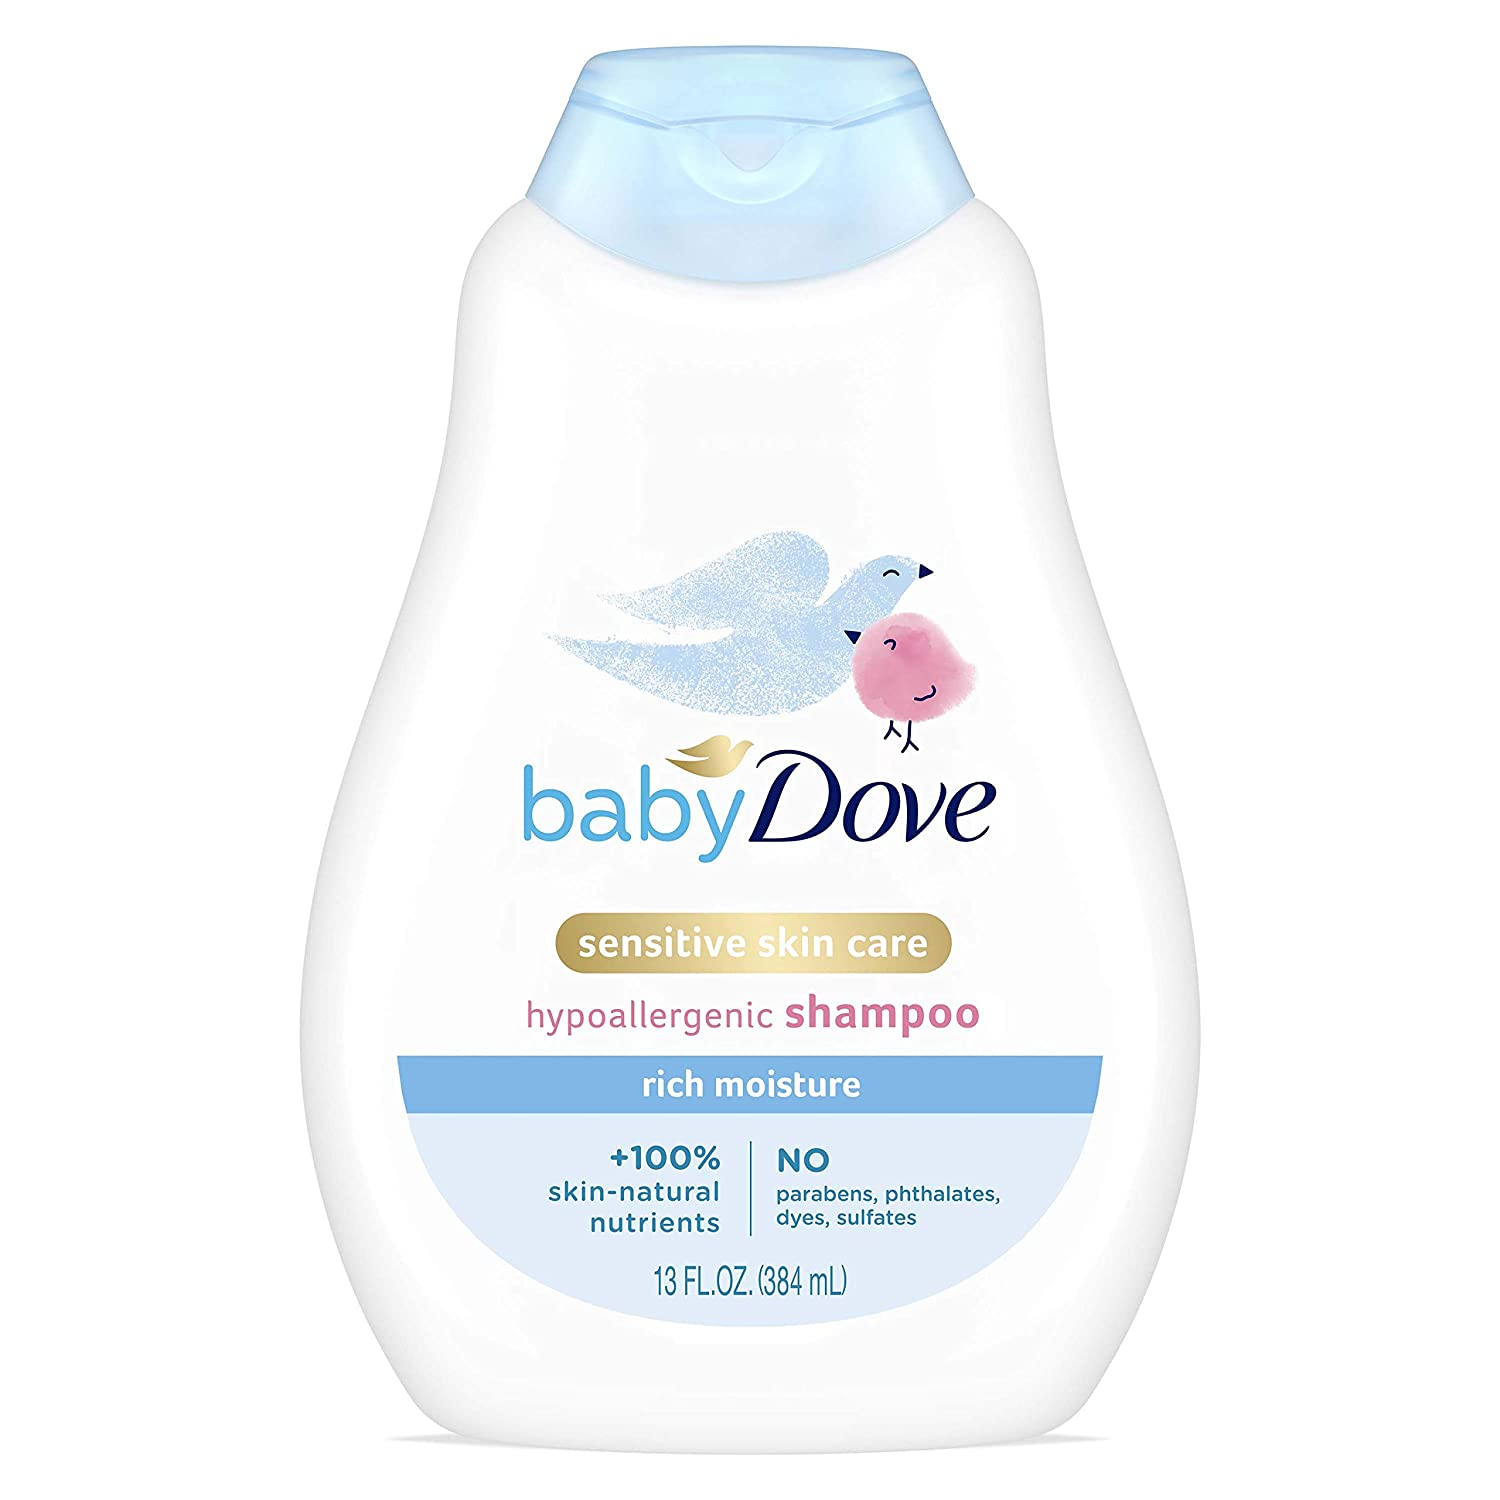 Baby Dove Shampoo For Baby's Hair and Scalp Rich Moisture Hypoallergenic and Tear-Free 13 oz